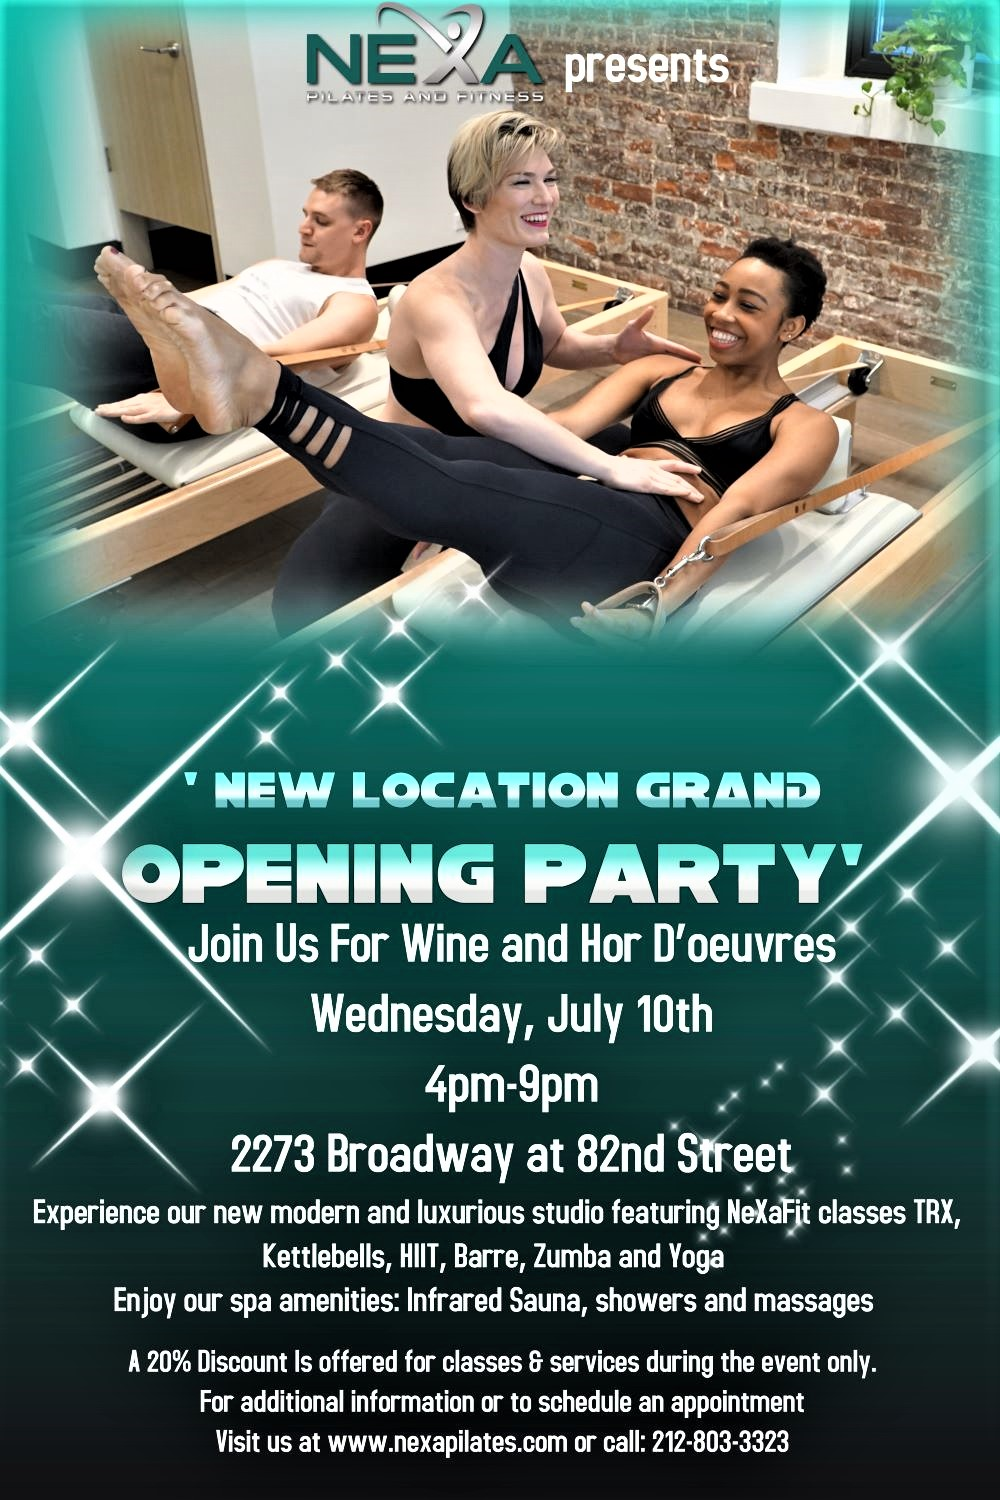 Grand Opening Flyer FINAL_resized1.jpg